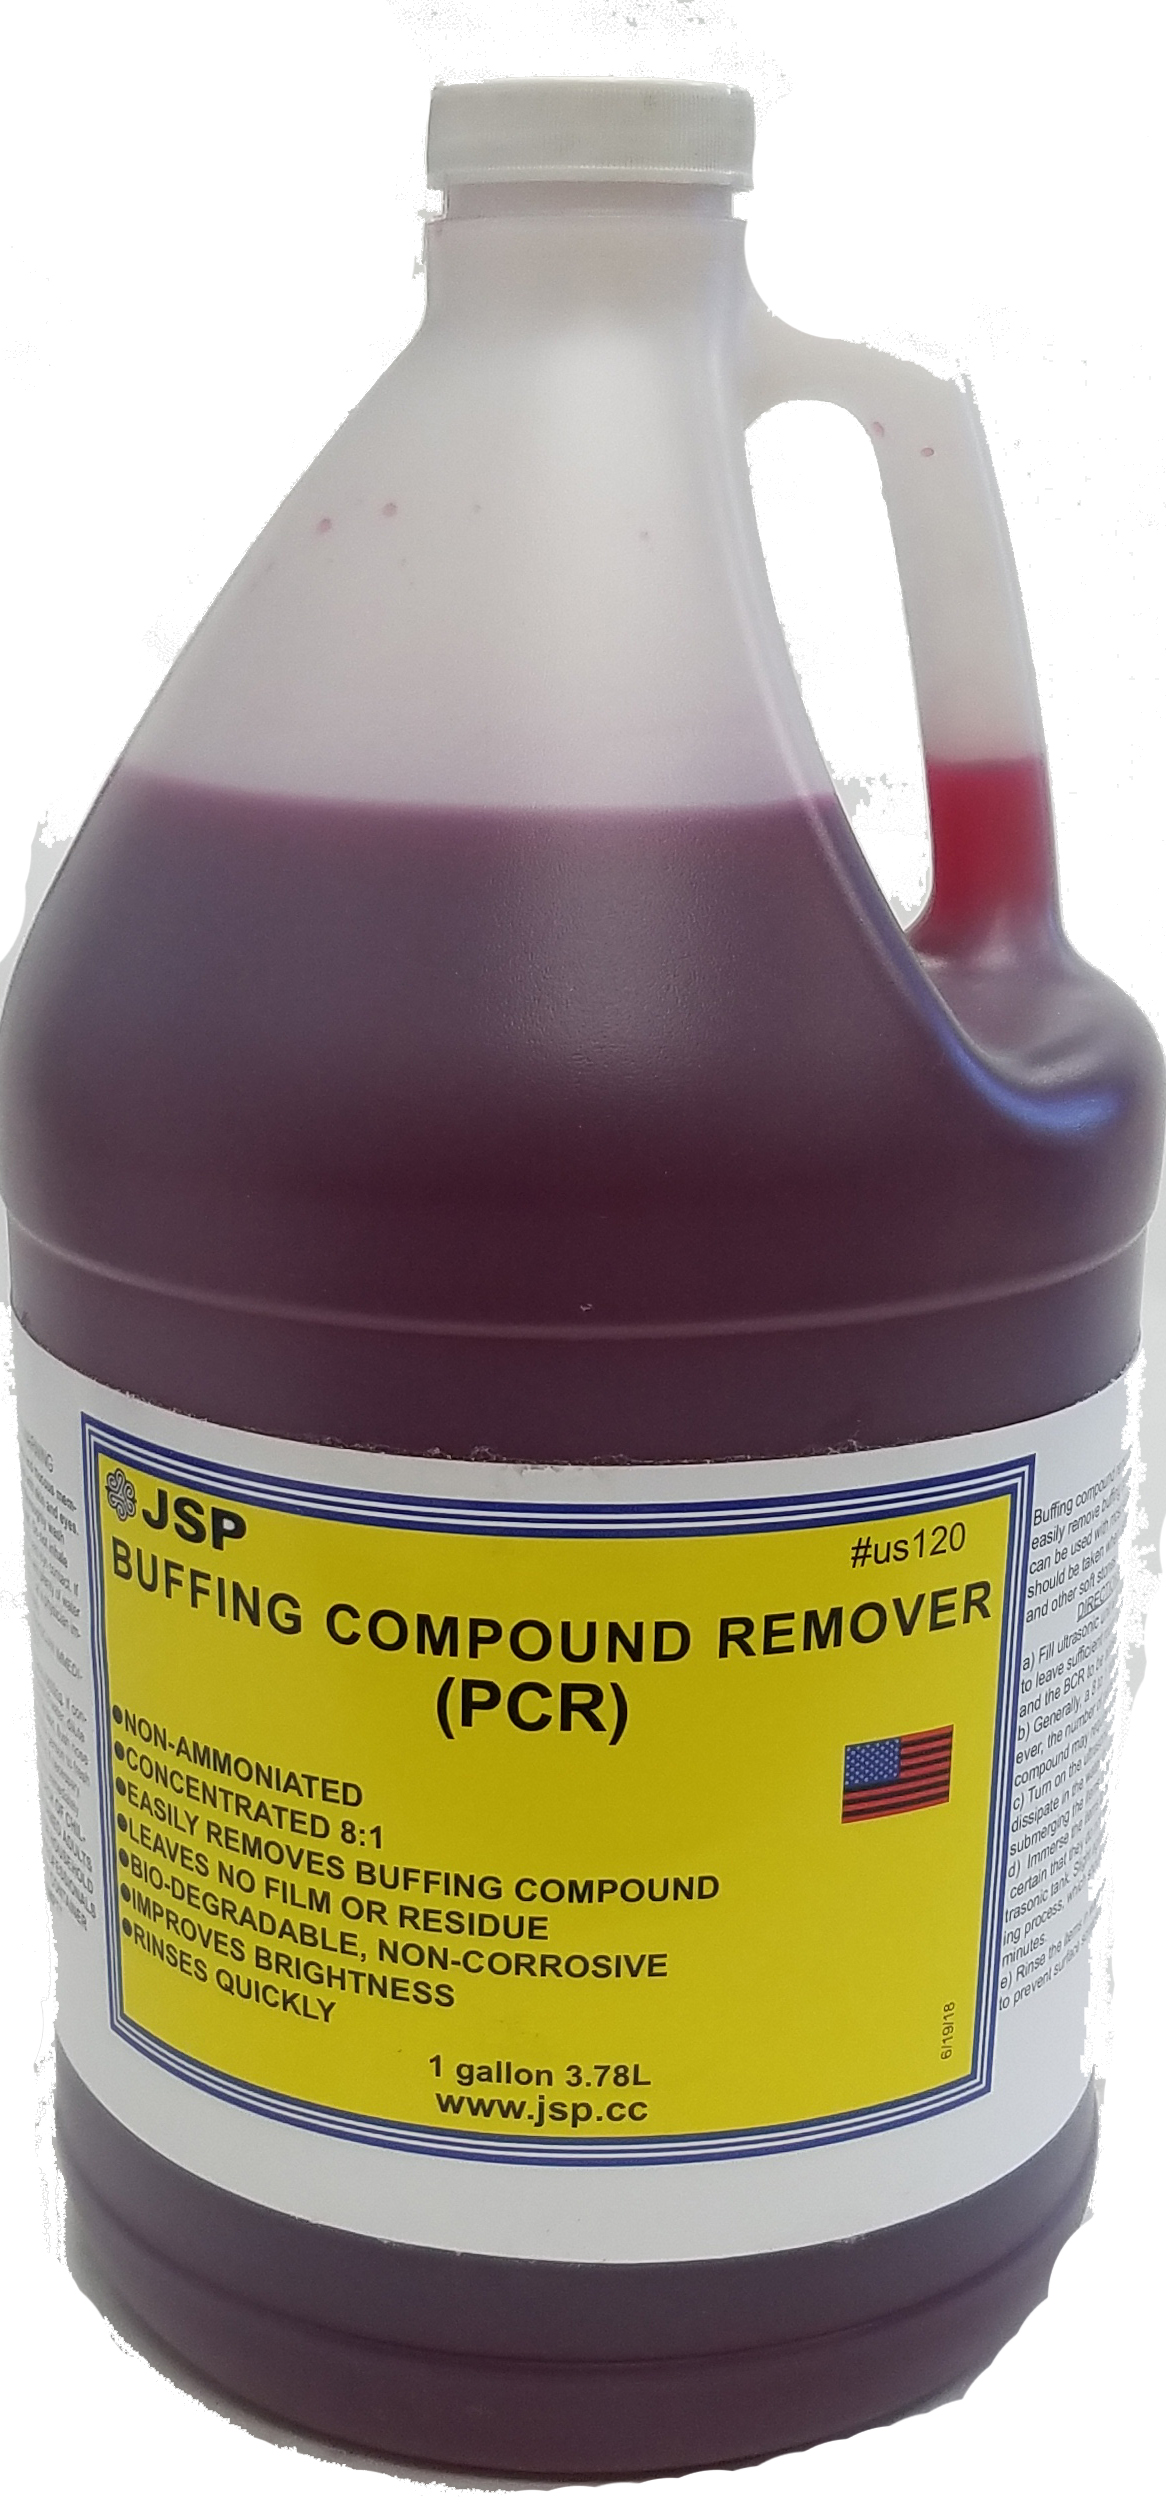 BUFFING COMPOUND REMOVER,1 GALLON